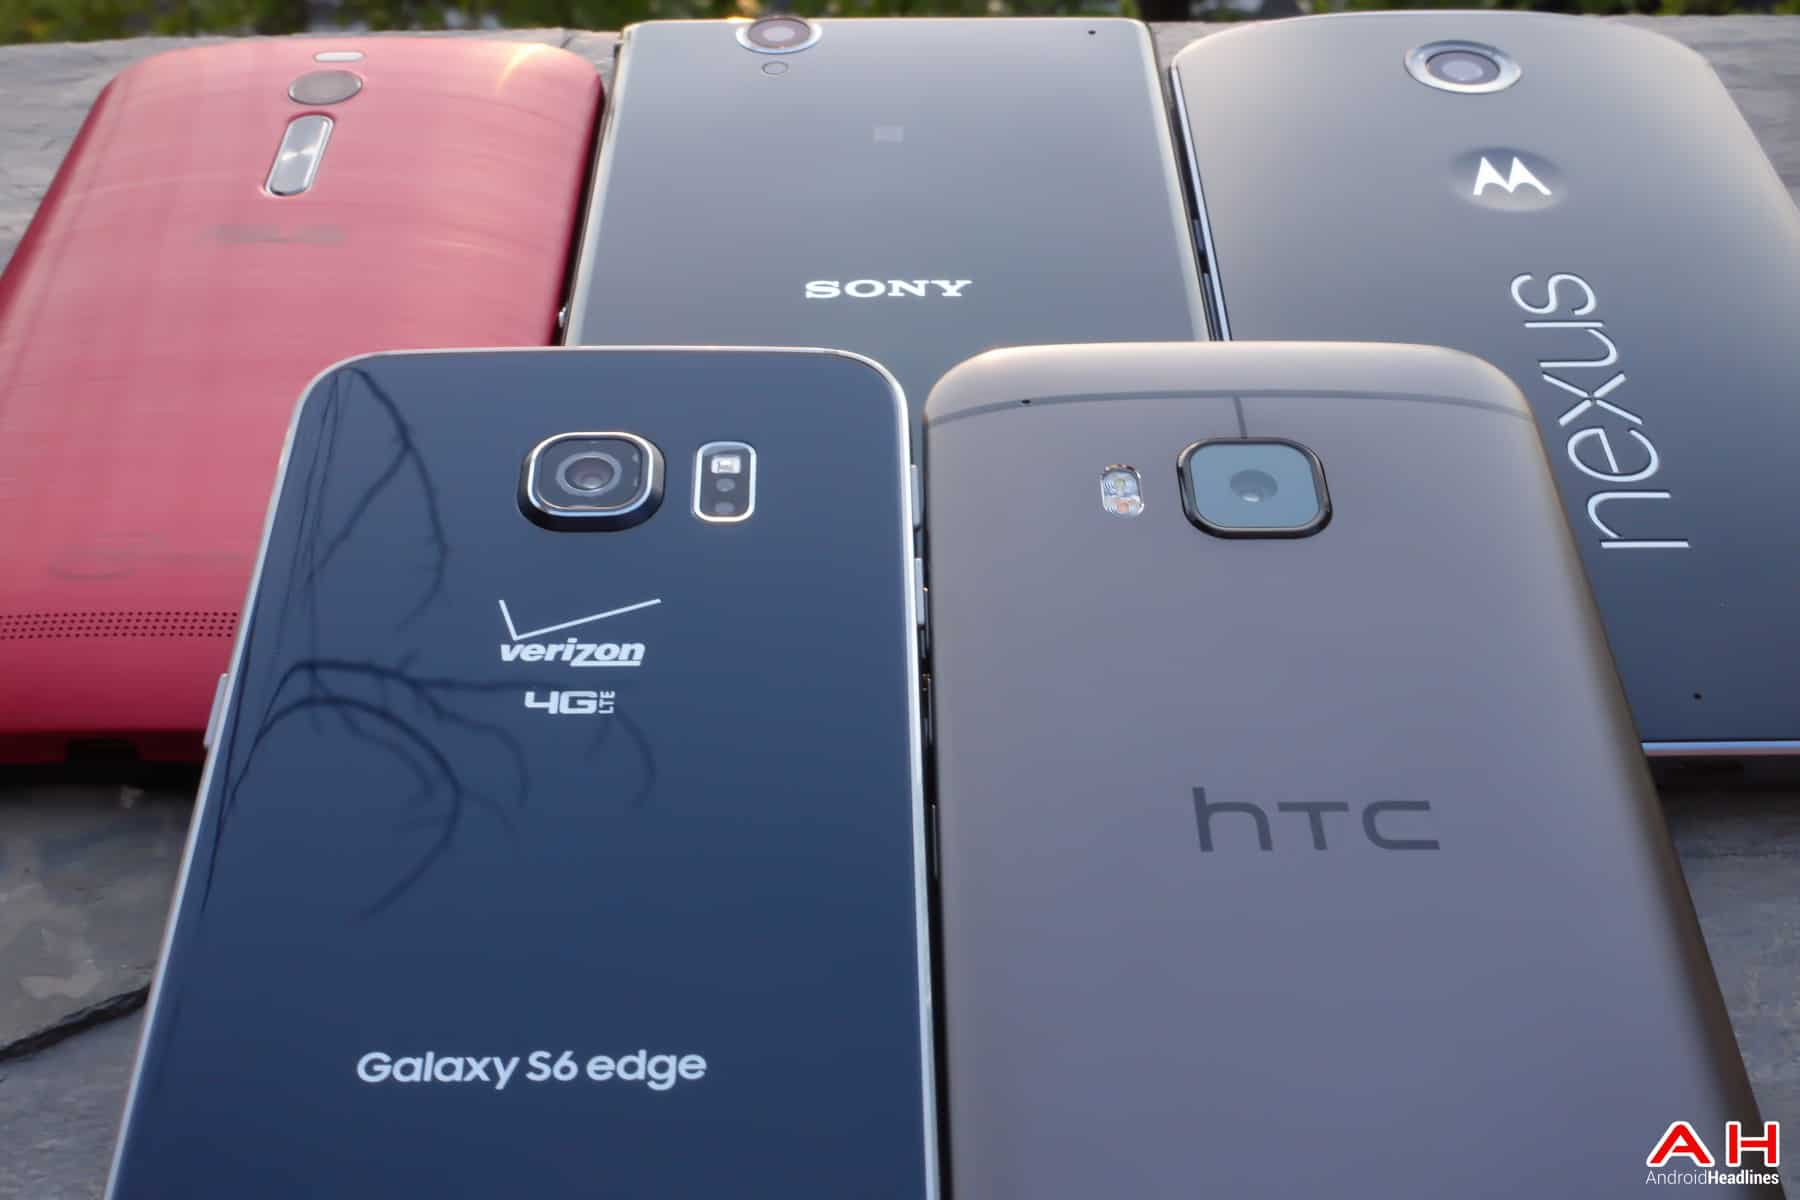 AH AH Android Samrtphones Nexus Samsung Galaxy S6 HTC One M9 Sony OEM logos-21 May 3rd Batch 2-3